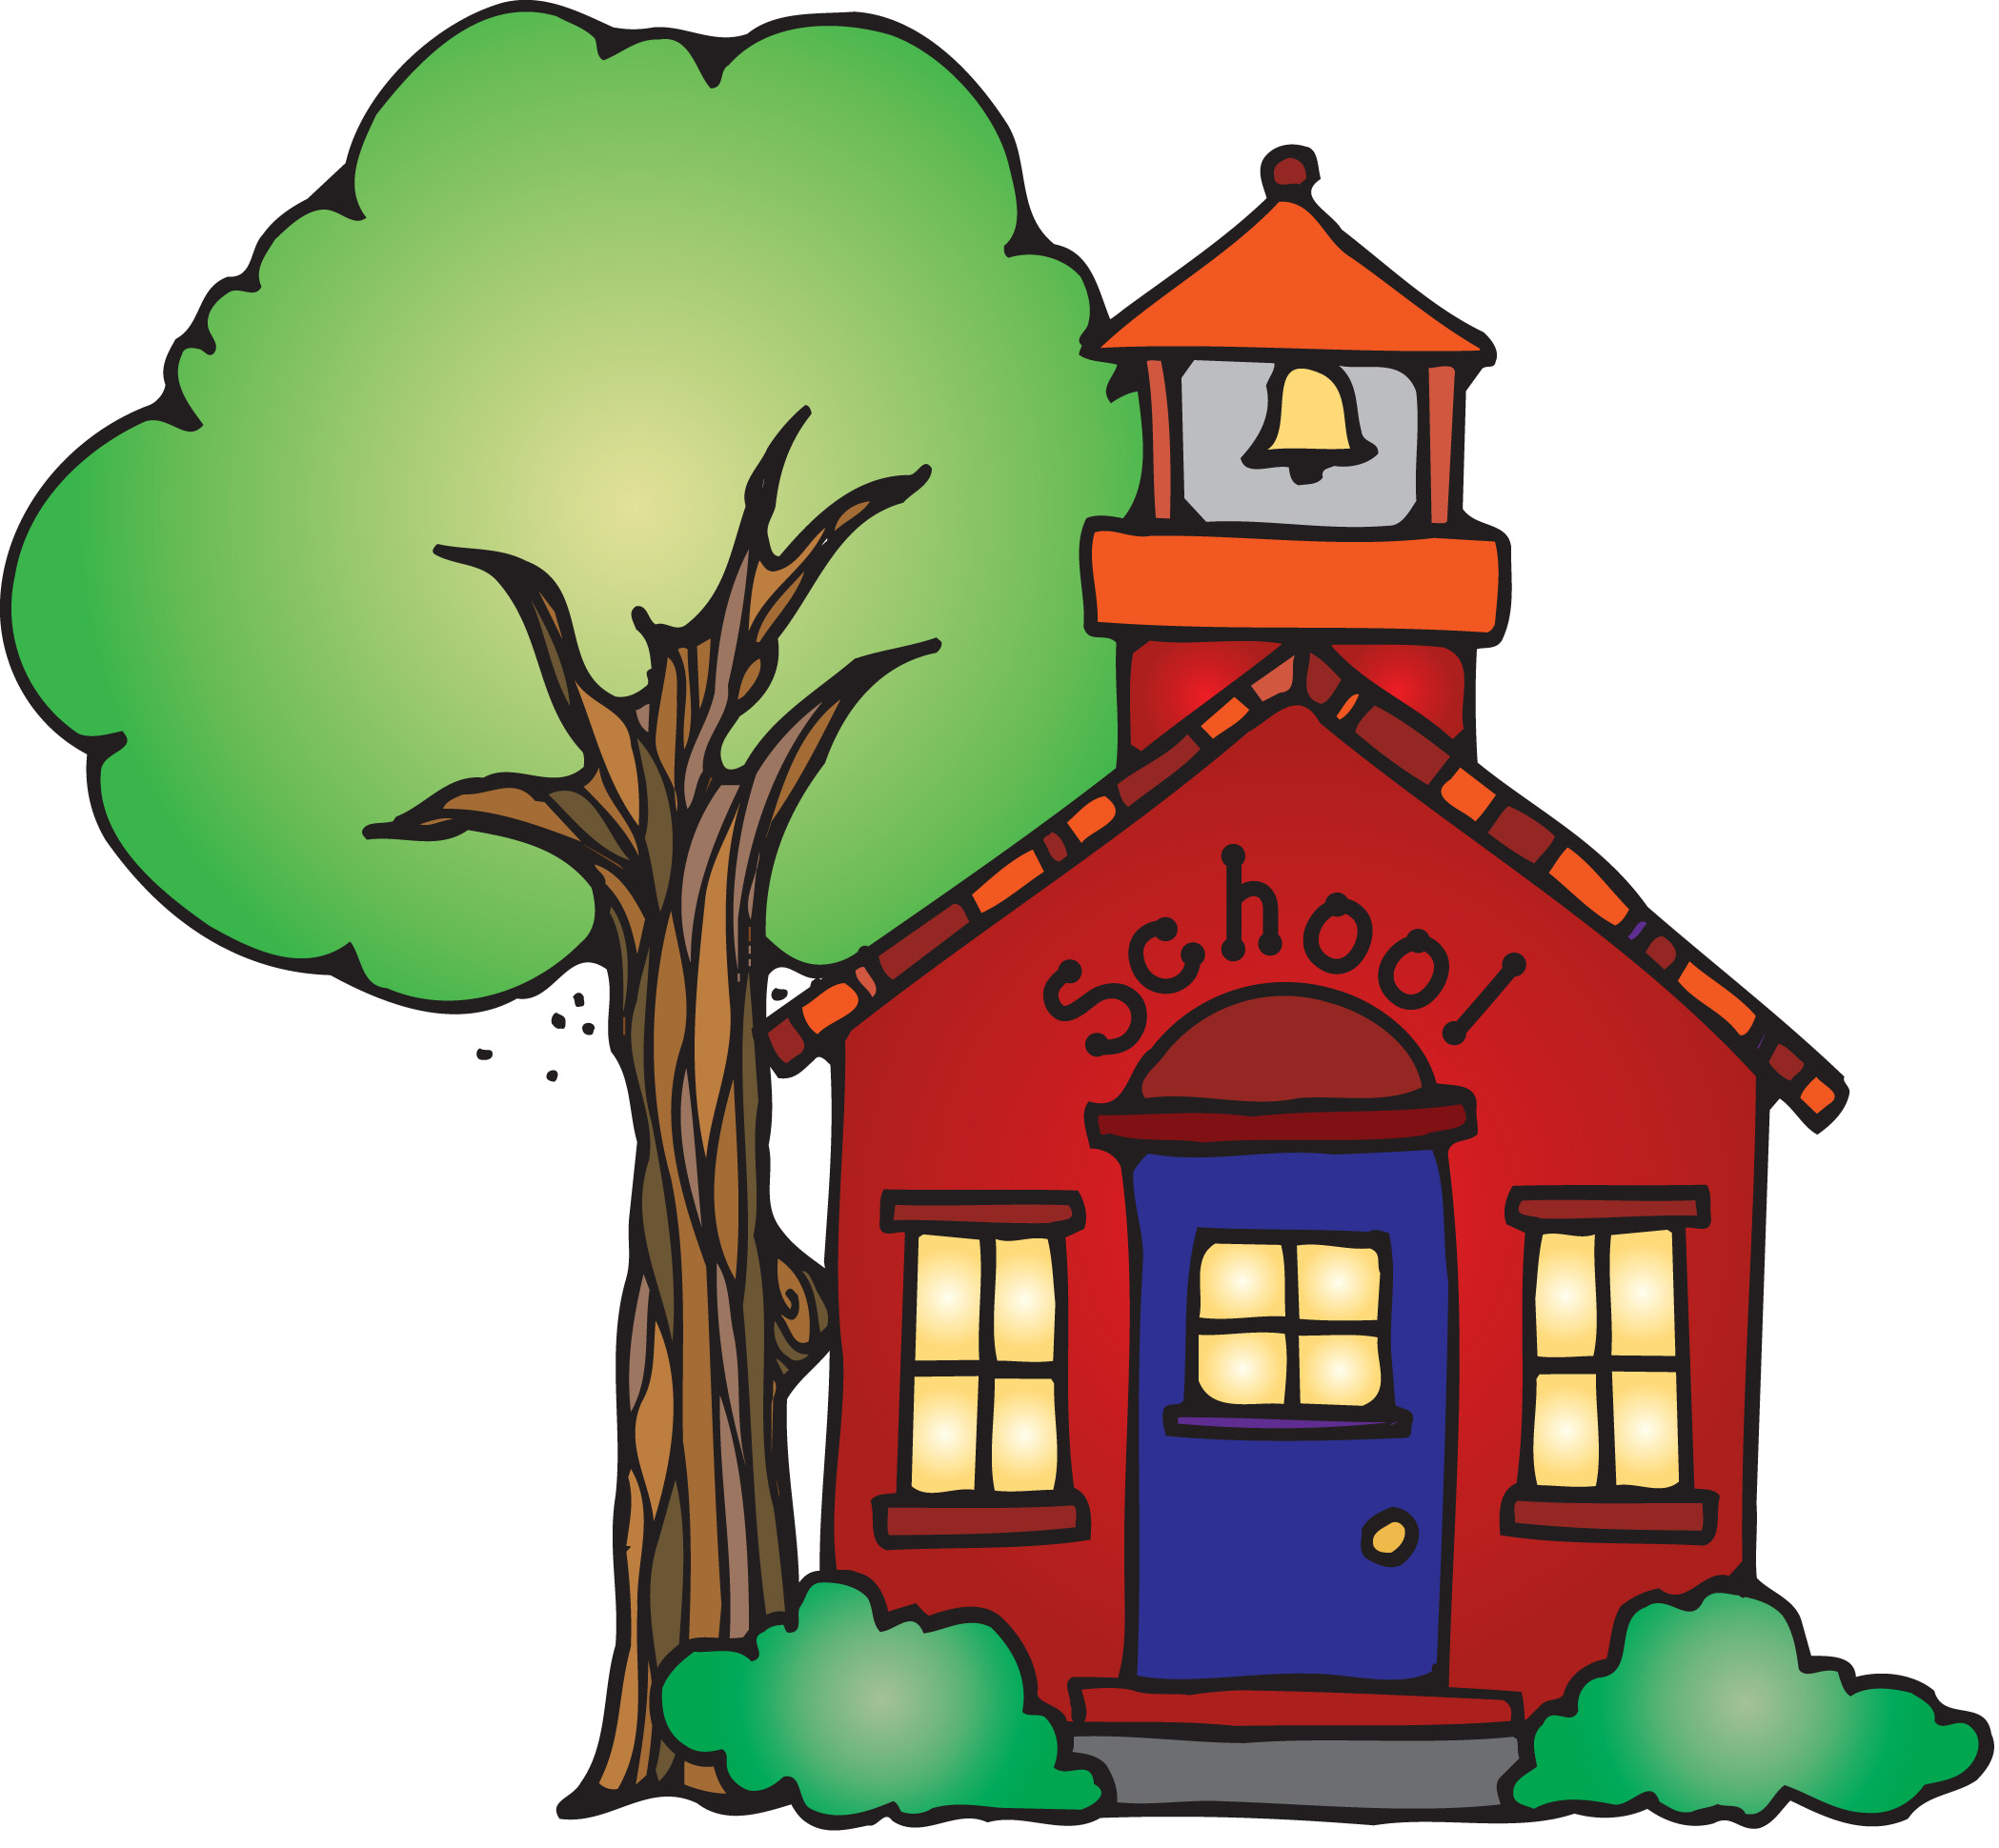 Red School House Clip Art - Cliparts.co